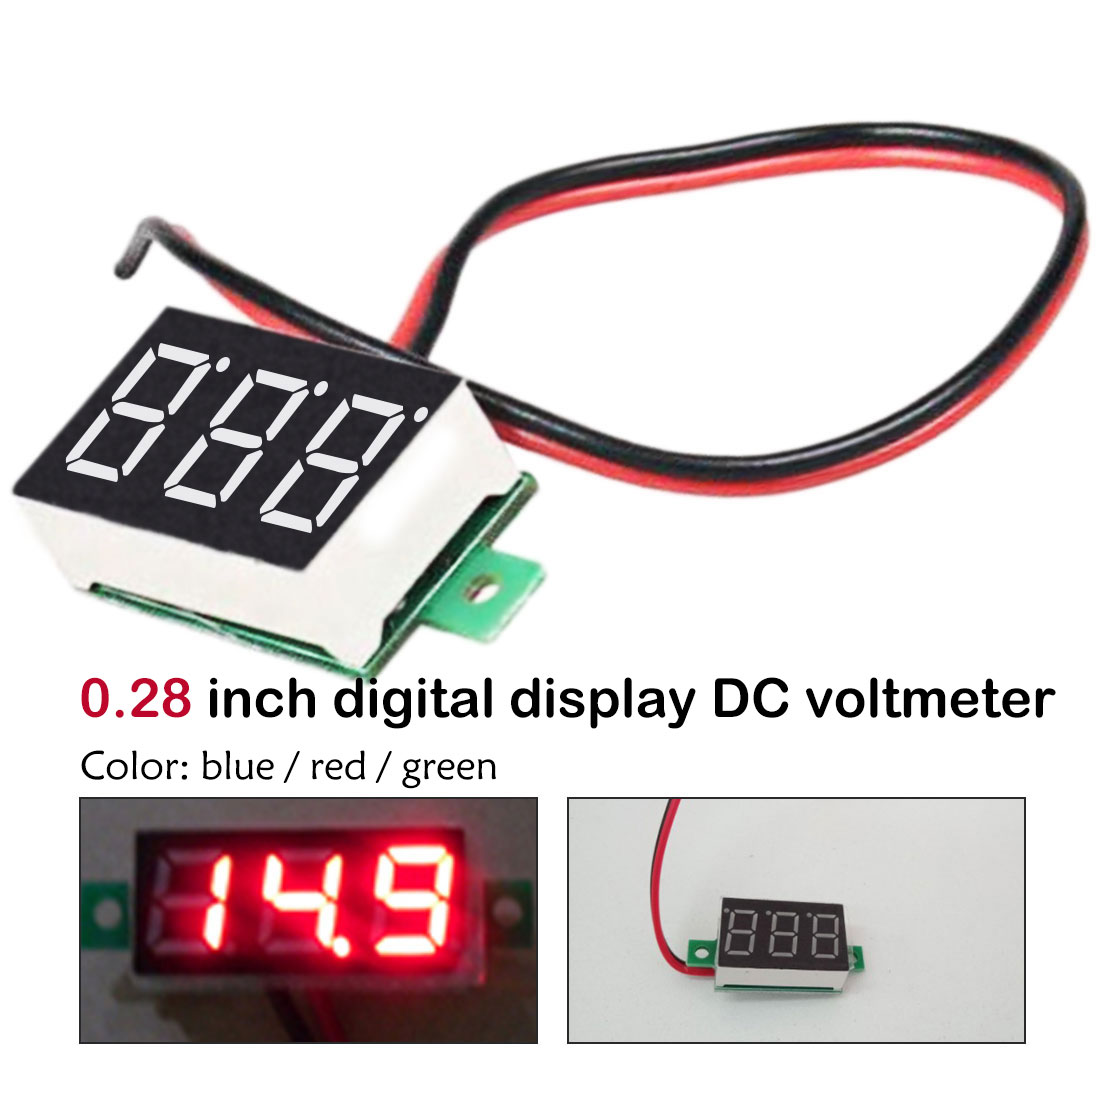 DC 2.5V-30V 0.28 Inch LED Digital Voltmeter Voltage Meter Volt Detector Monitor Tester Panel